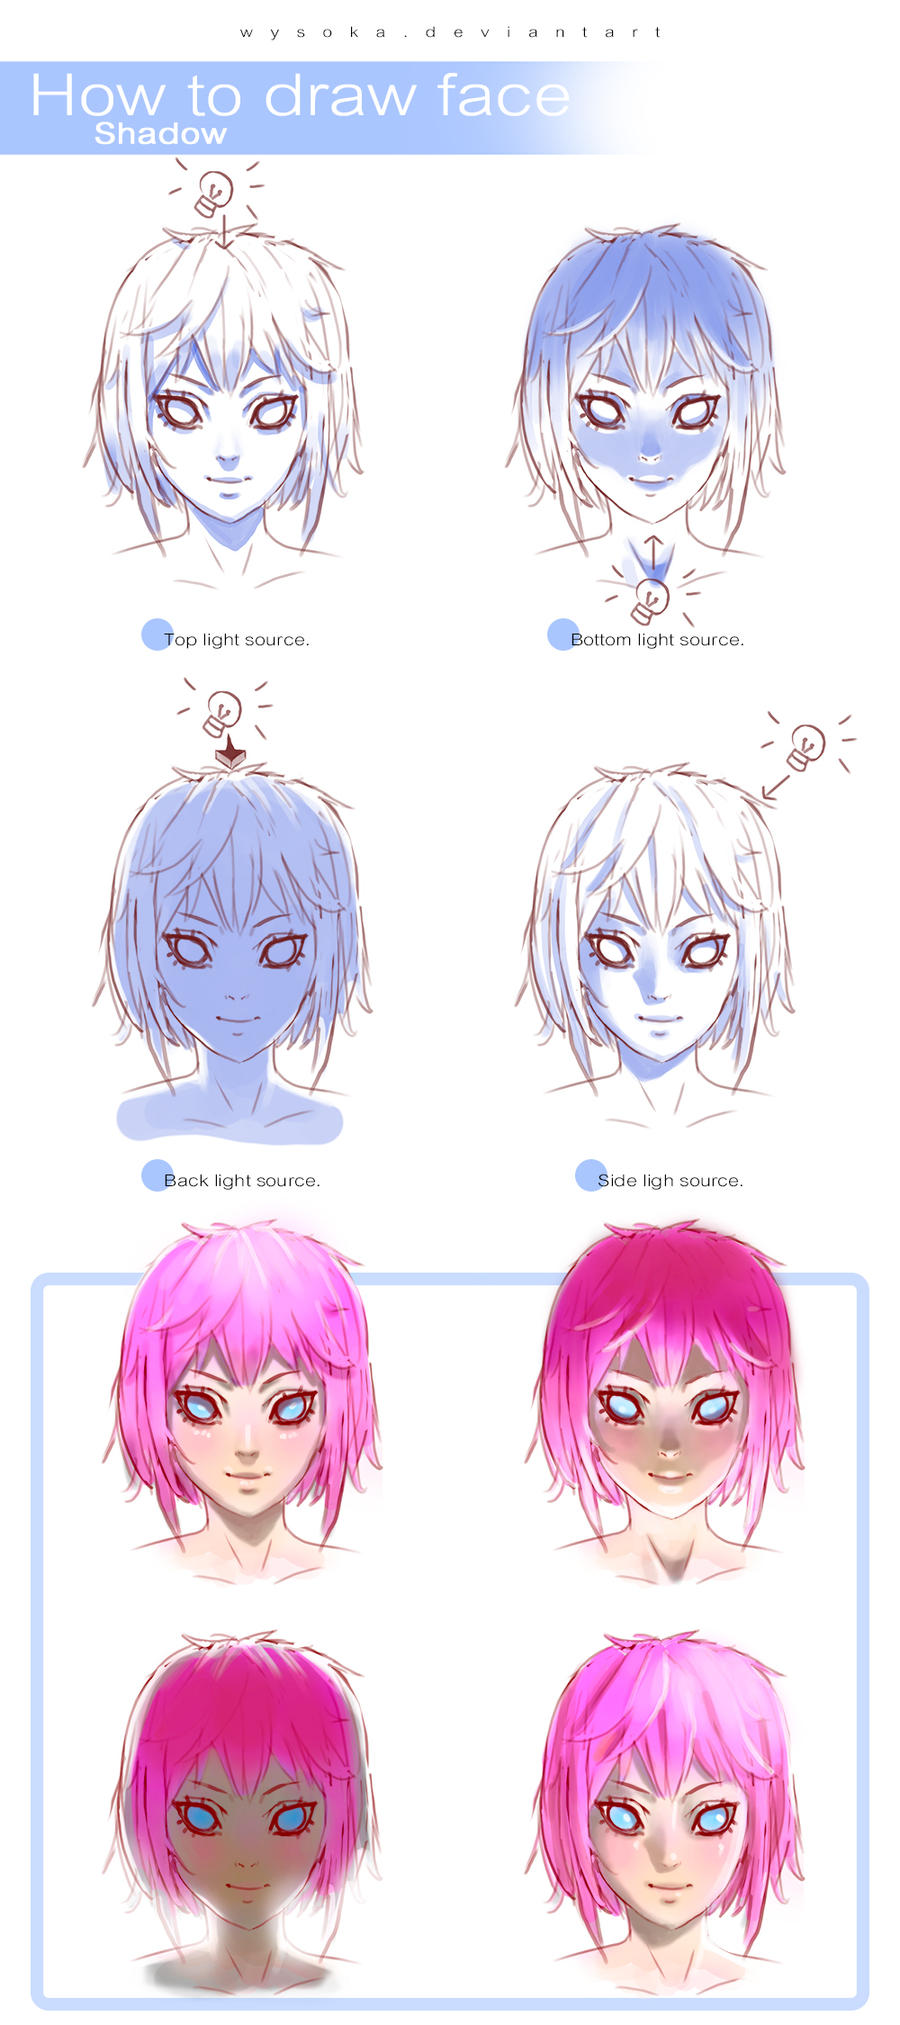 How To Draw Face - Shadow